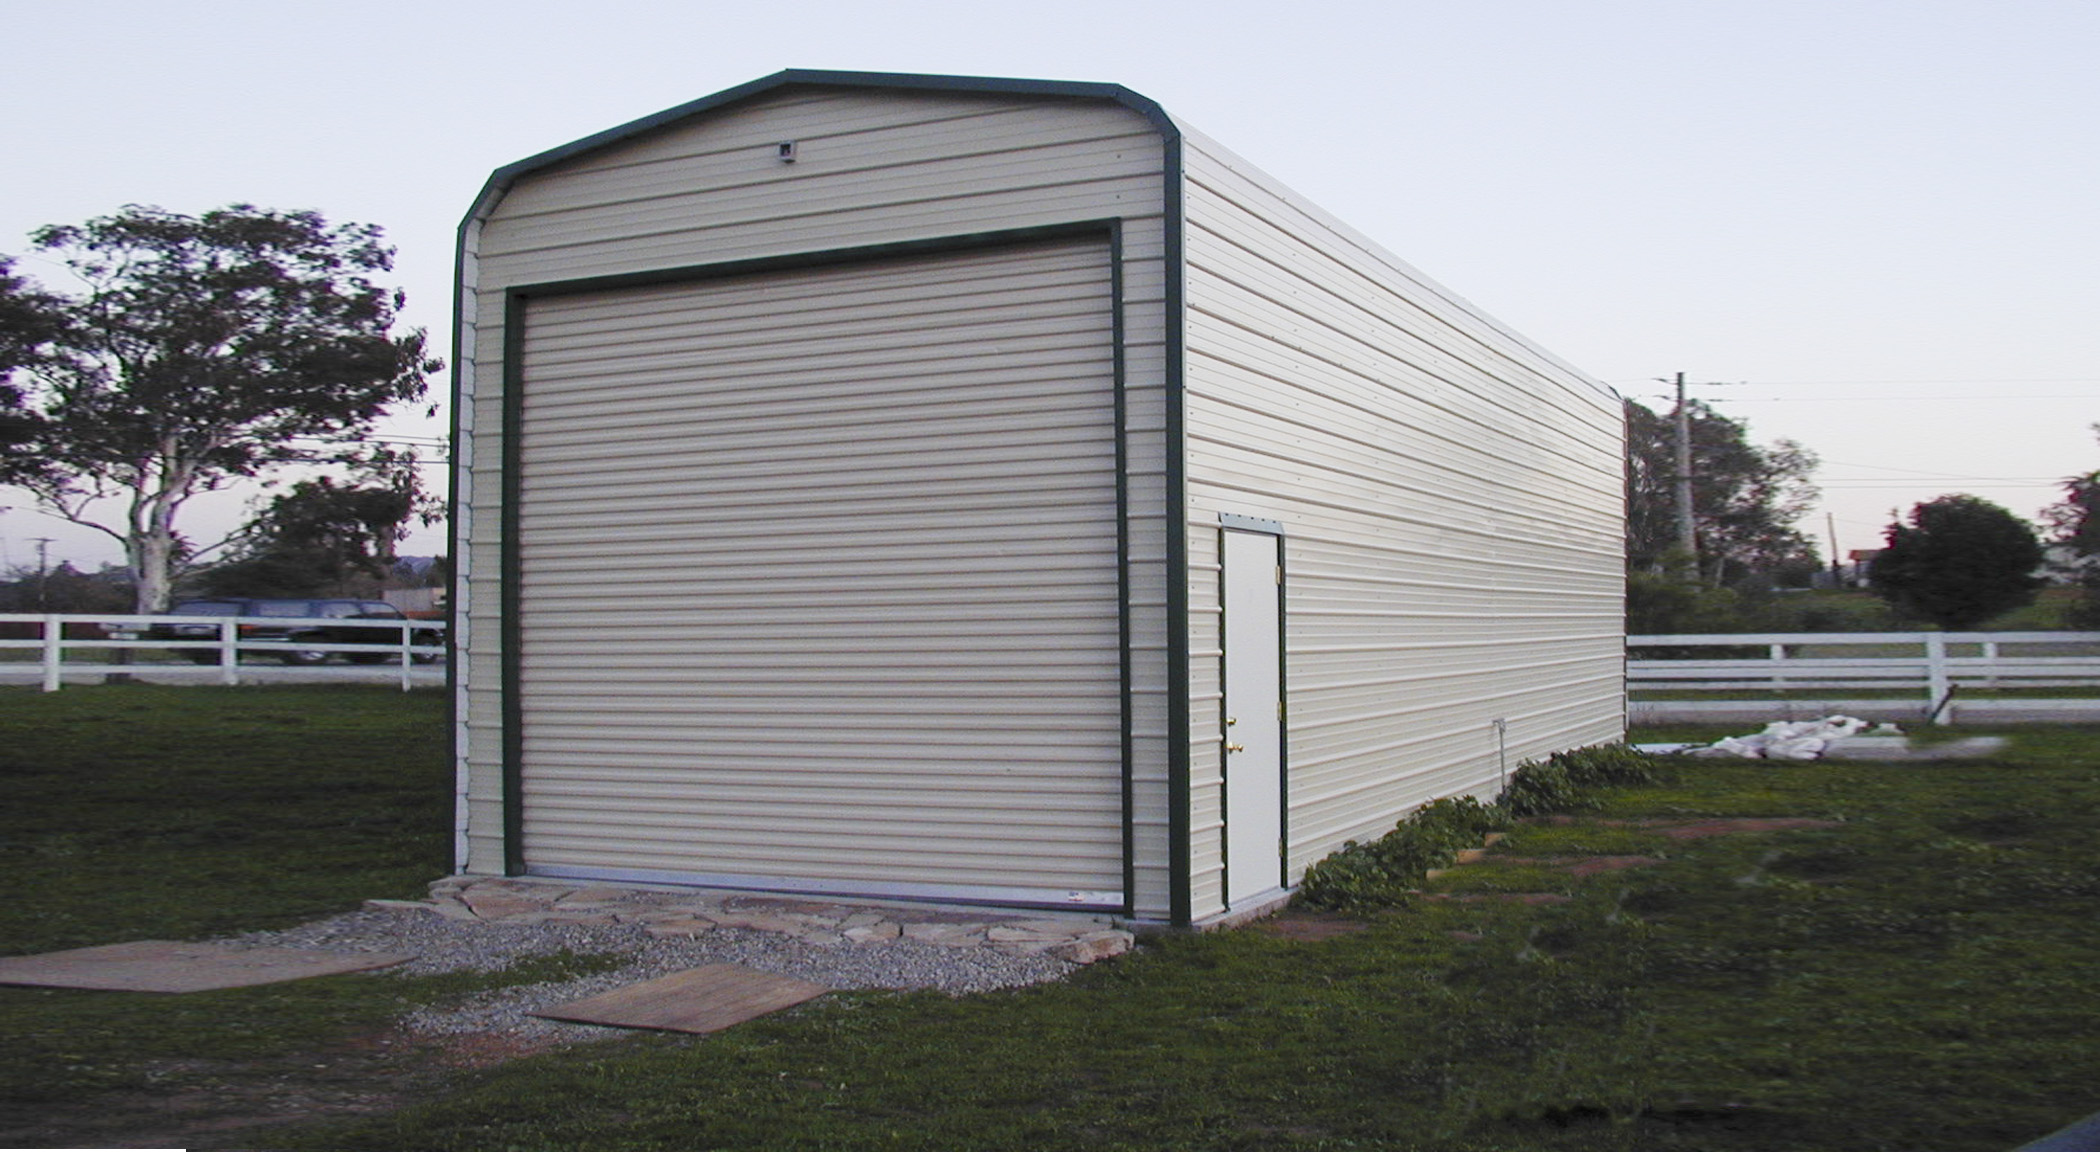 Metal Buildings Garages Carports Rv : Luxury enclosed carport for your home ideas